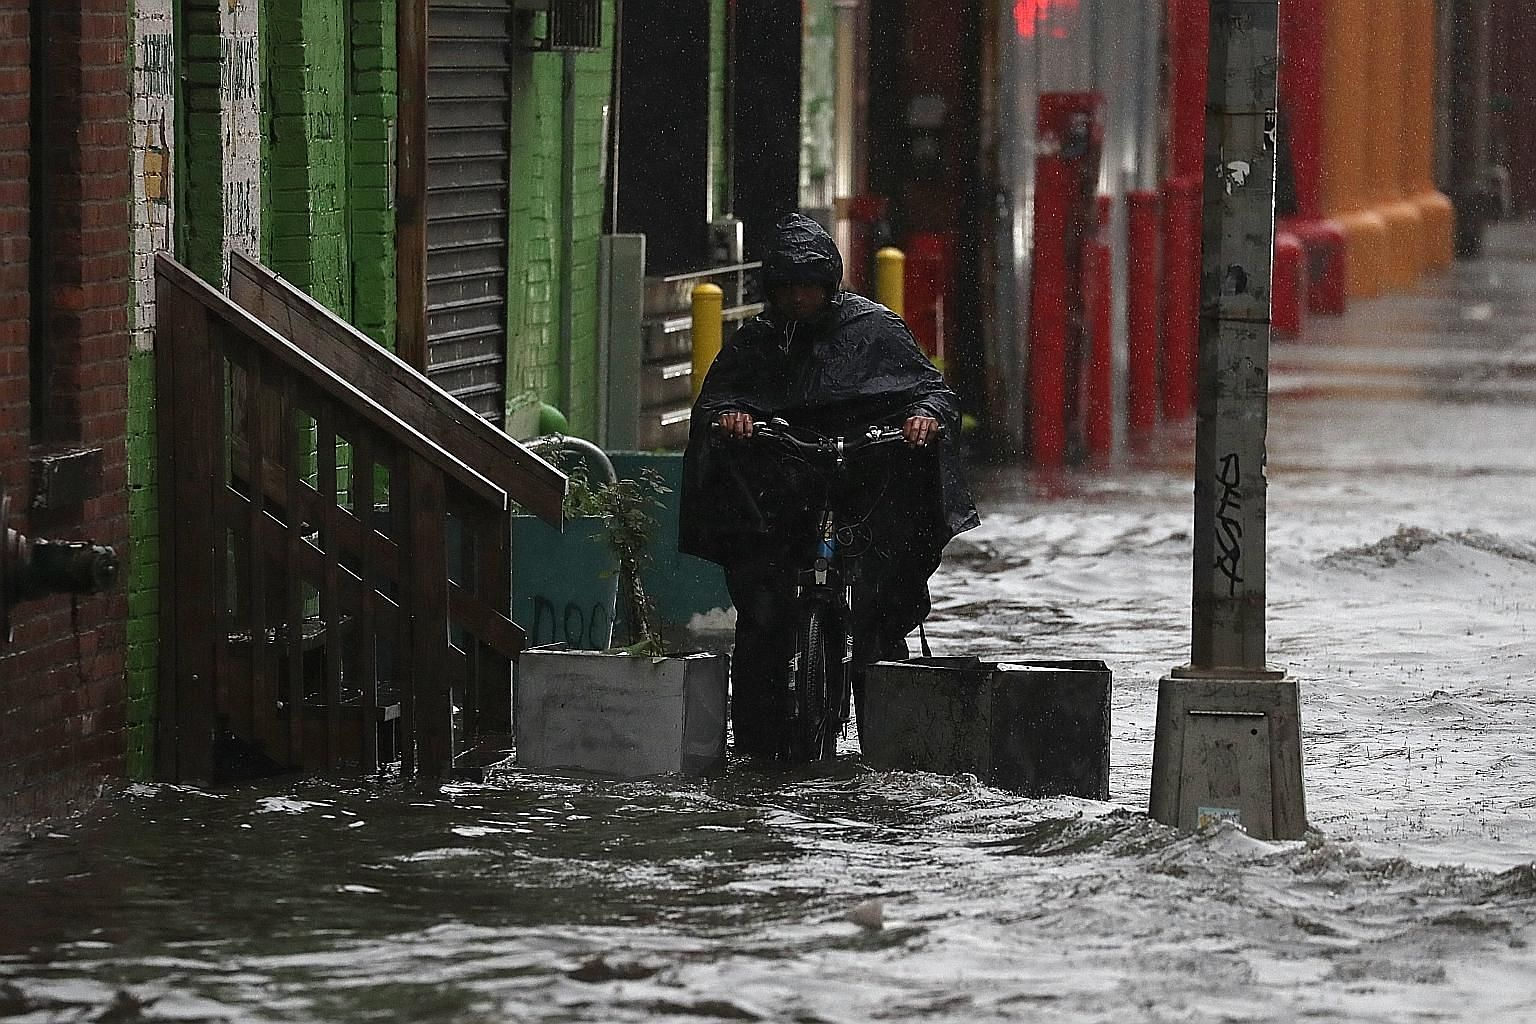 A flooded street in Brooklyn, New York, on Friday. Mr Donald Trump had promised to cancel the Paris Agreement on climate change during his presidential campaign. He has since said he will decide on the deal before the G7 meeting later this month.